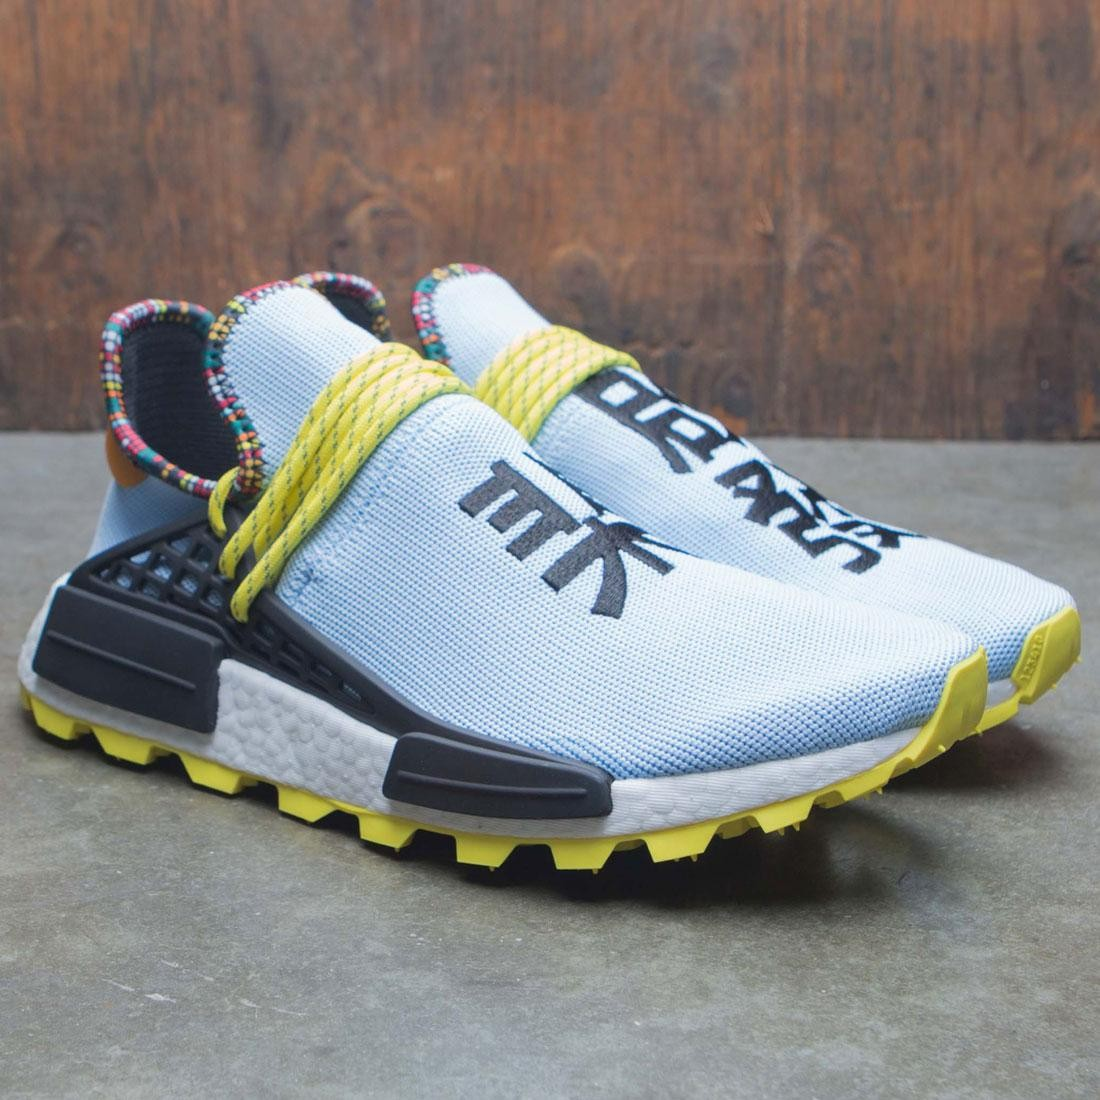 new arrival c9e72 58aee Adidas x Pharrell Williams Men Solar HU NMD (blue   core black   bright  orange)